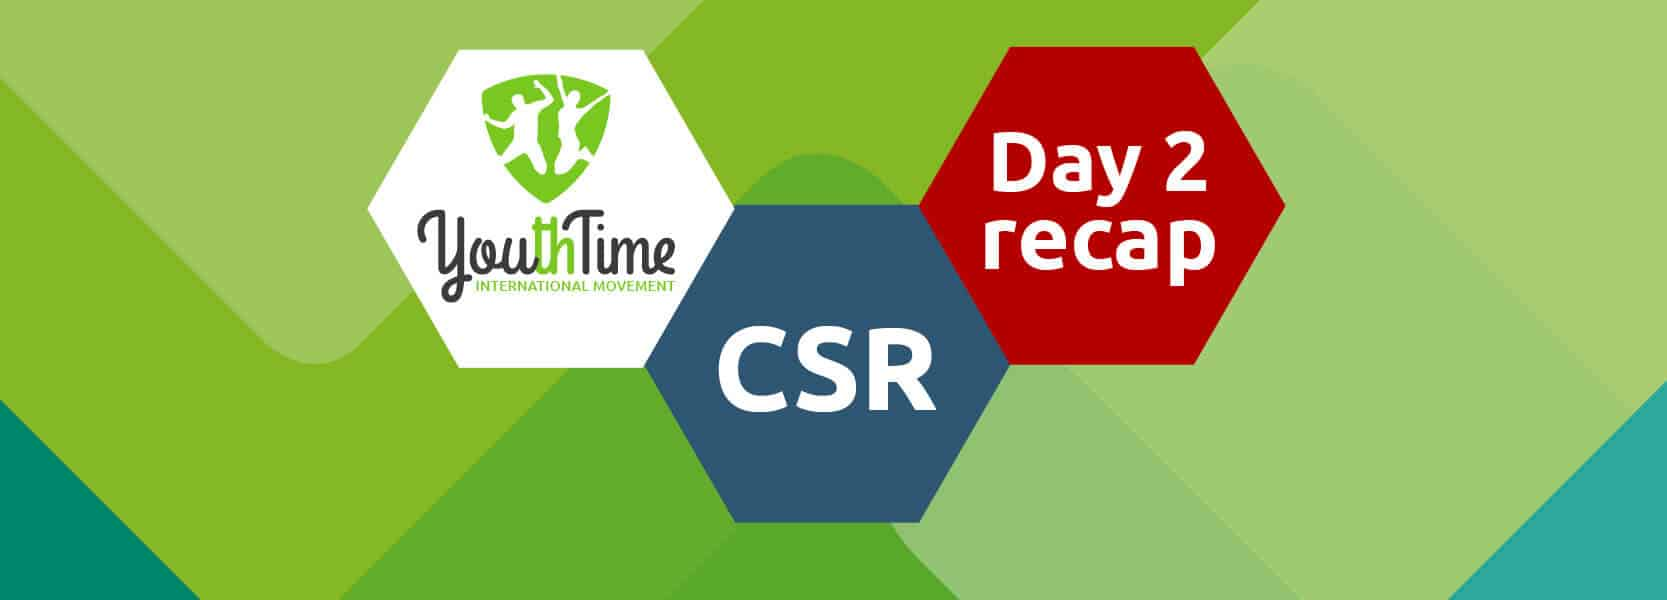 2021 CSR D2R Is Corporate Responsibility Key to Sustainability